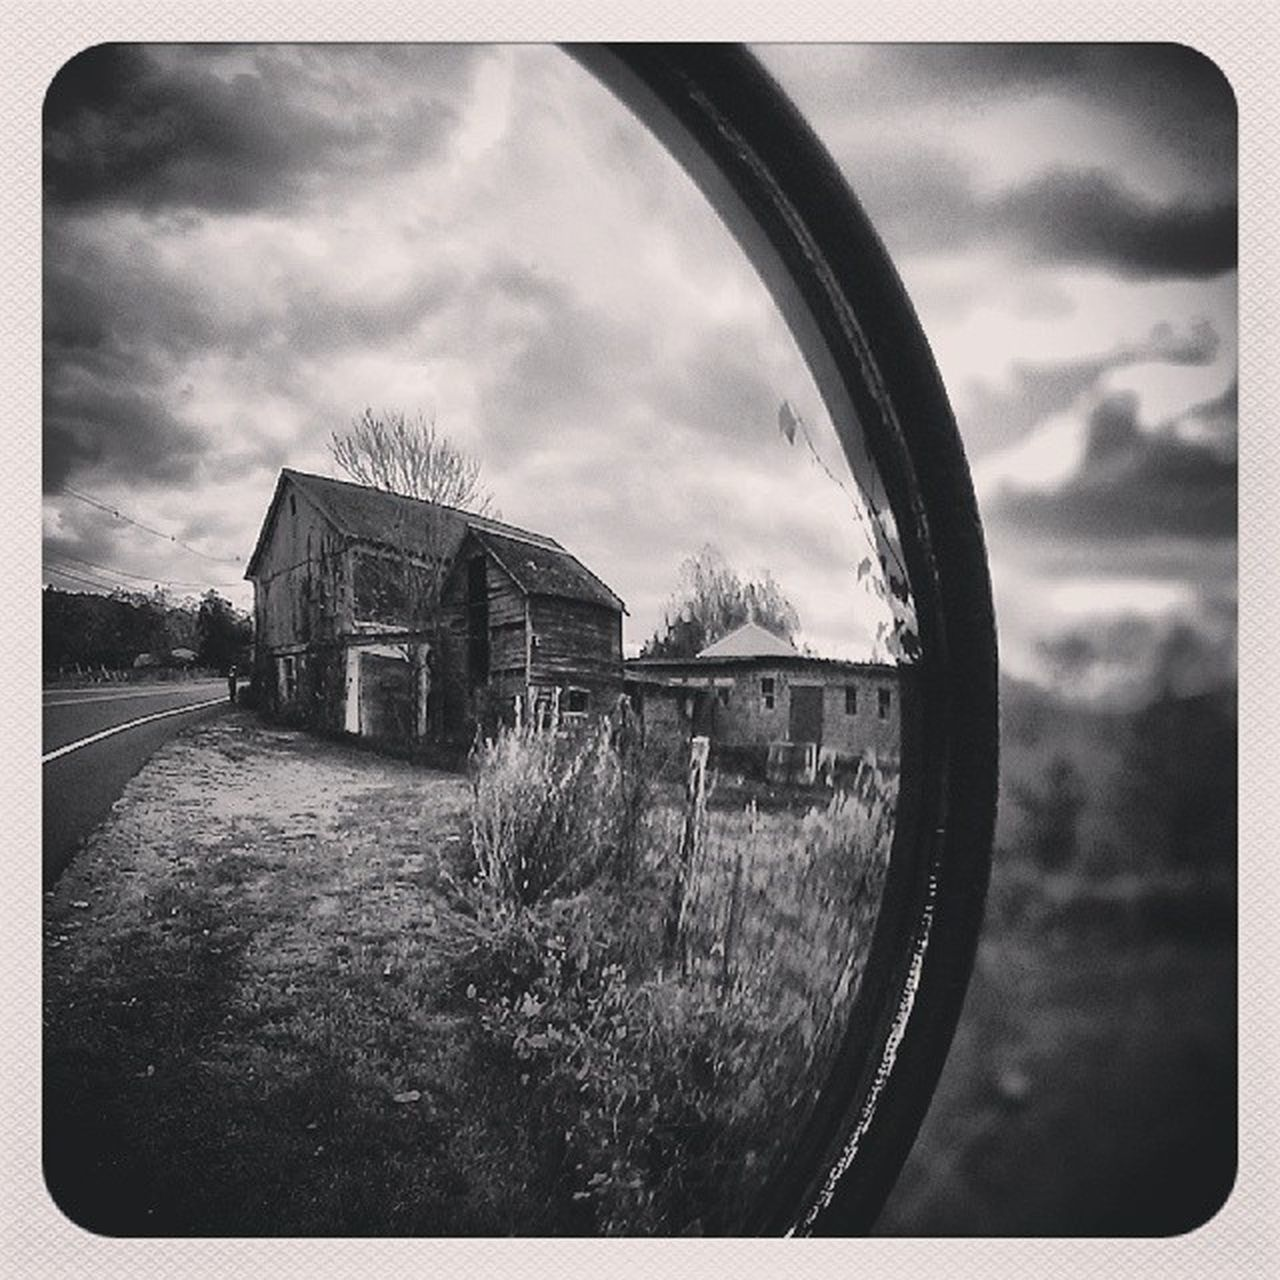 Look what I see behind me! Blackandwhite Mirror Eyesbehindme Lostinnj Forgottennj Abandonedhouse Instagram Emptyplaces DailyShot Dailydose Insta4fun Instafind